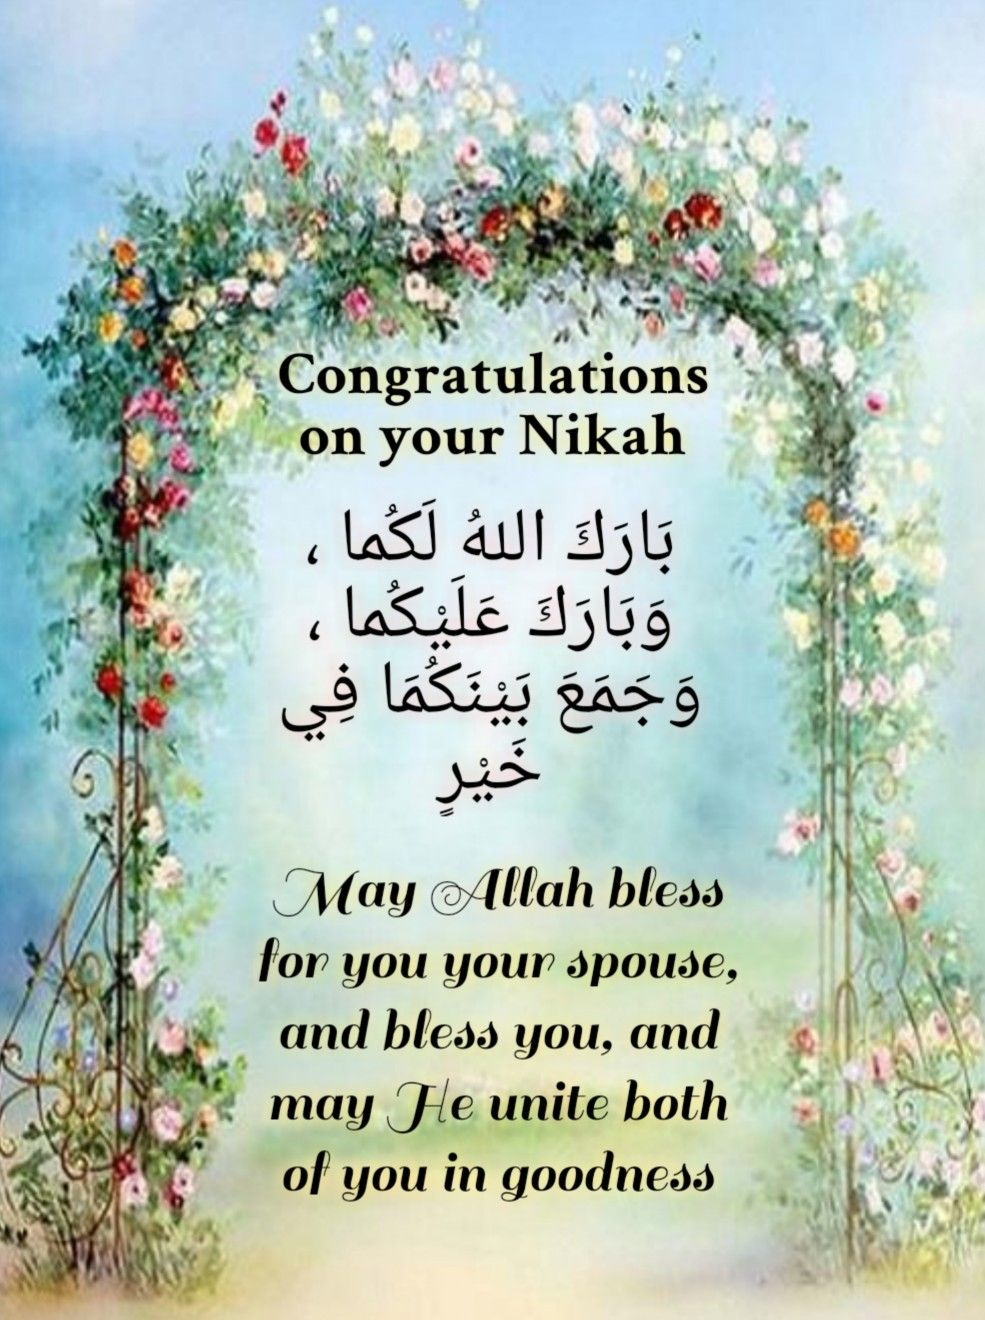 Islamic Wedding Wishes : islamic, wedding, wishes, Newly, Congratulations, Nikah, Wedding, Anniversary, Wishes,, Quotes,, Wishes, Quotes